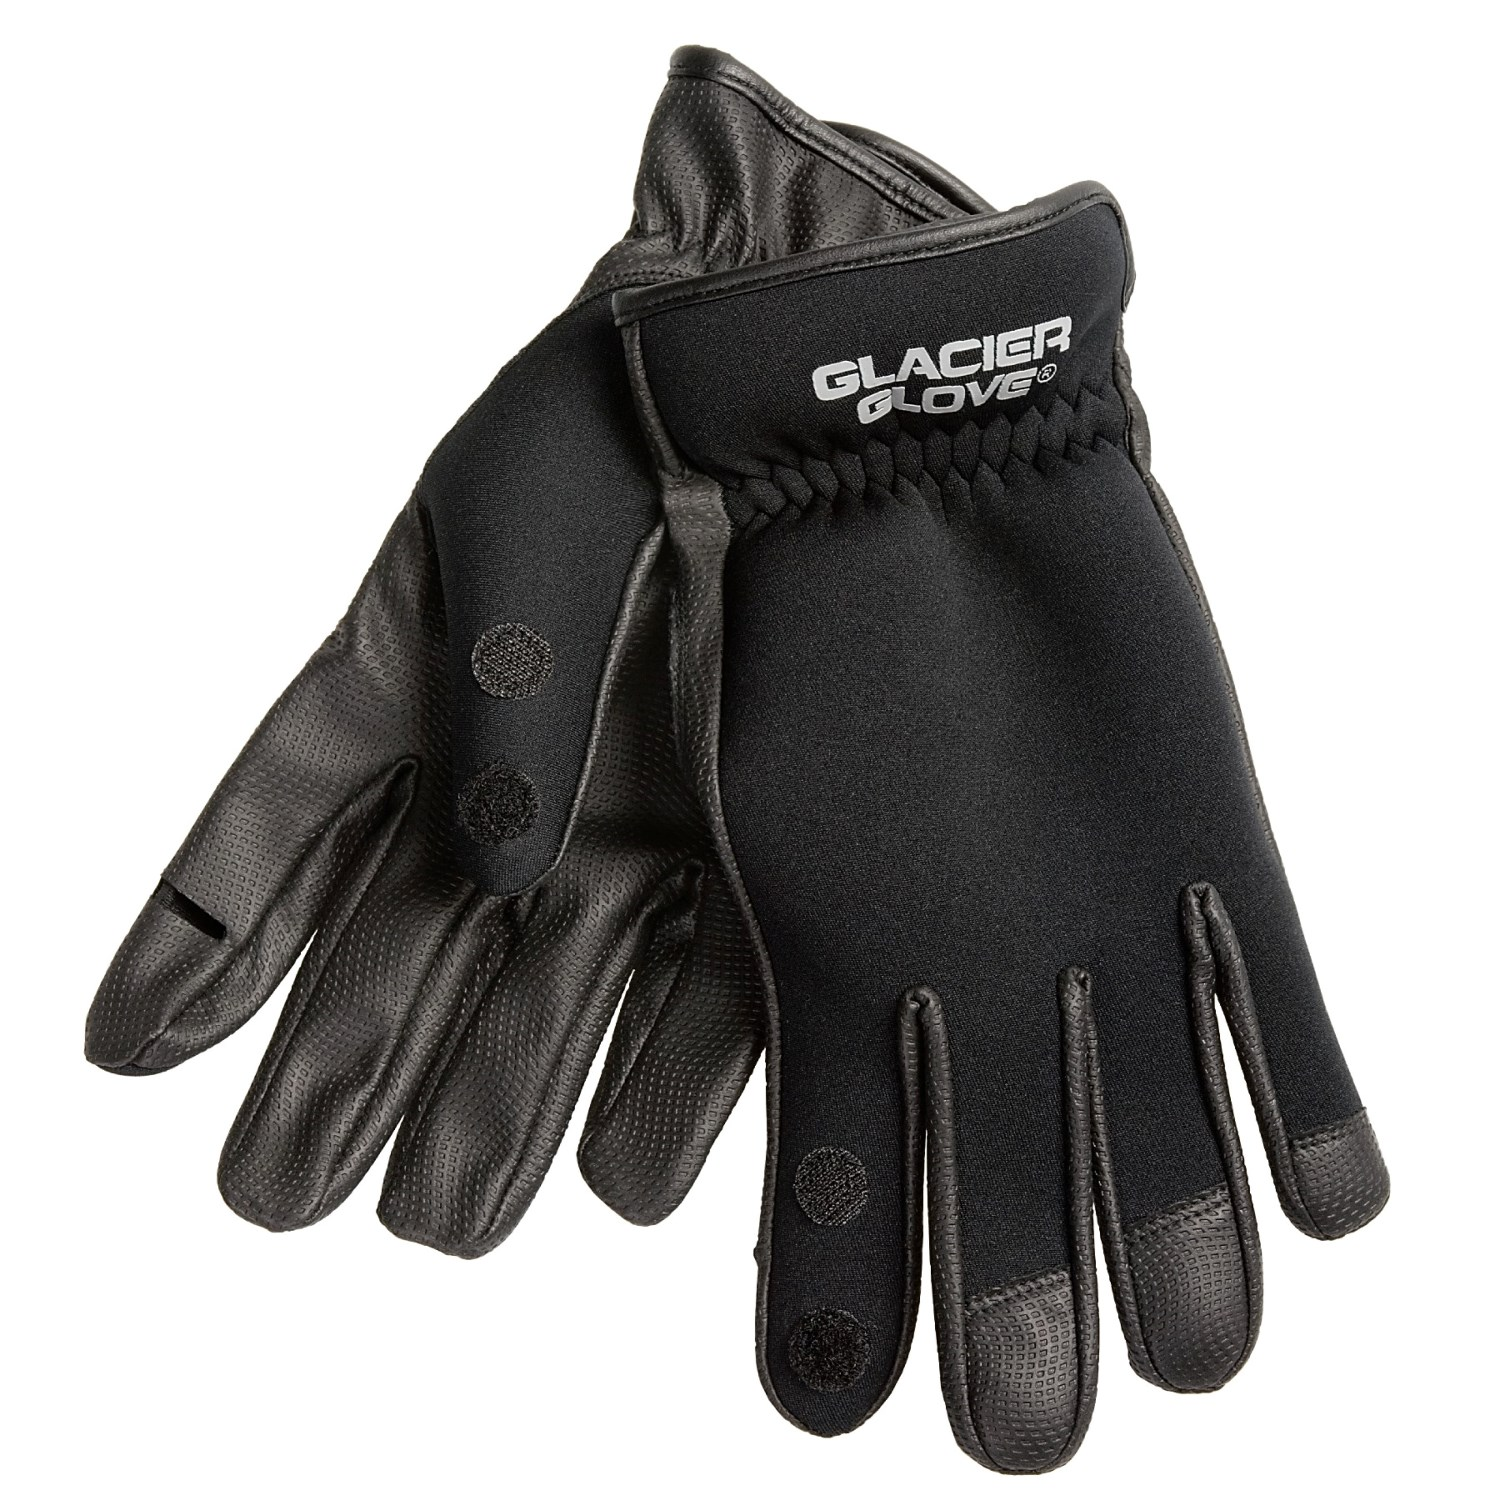 Glacier glove 781bk split finger neoprene fishing gloves for Neoprene fishing gloves